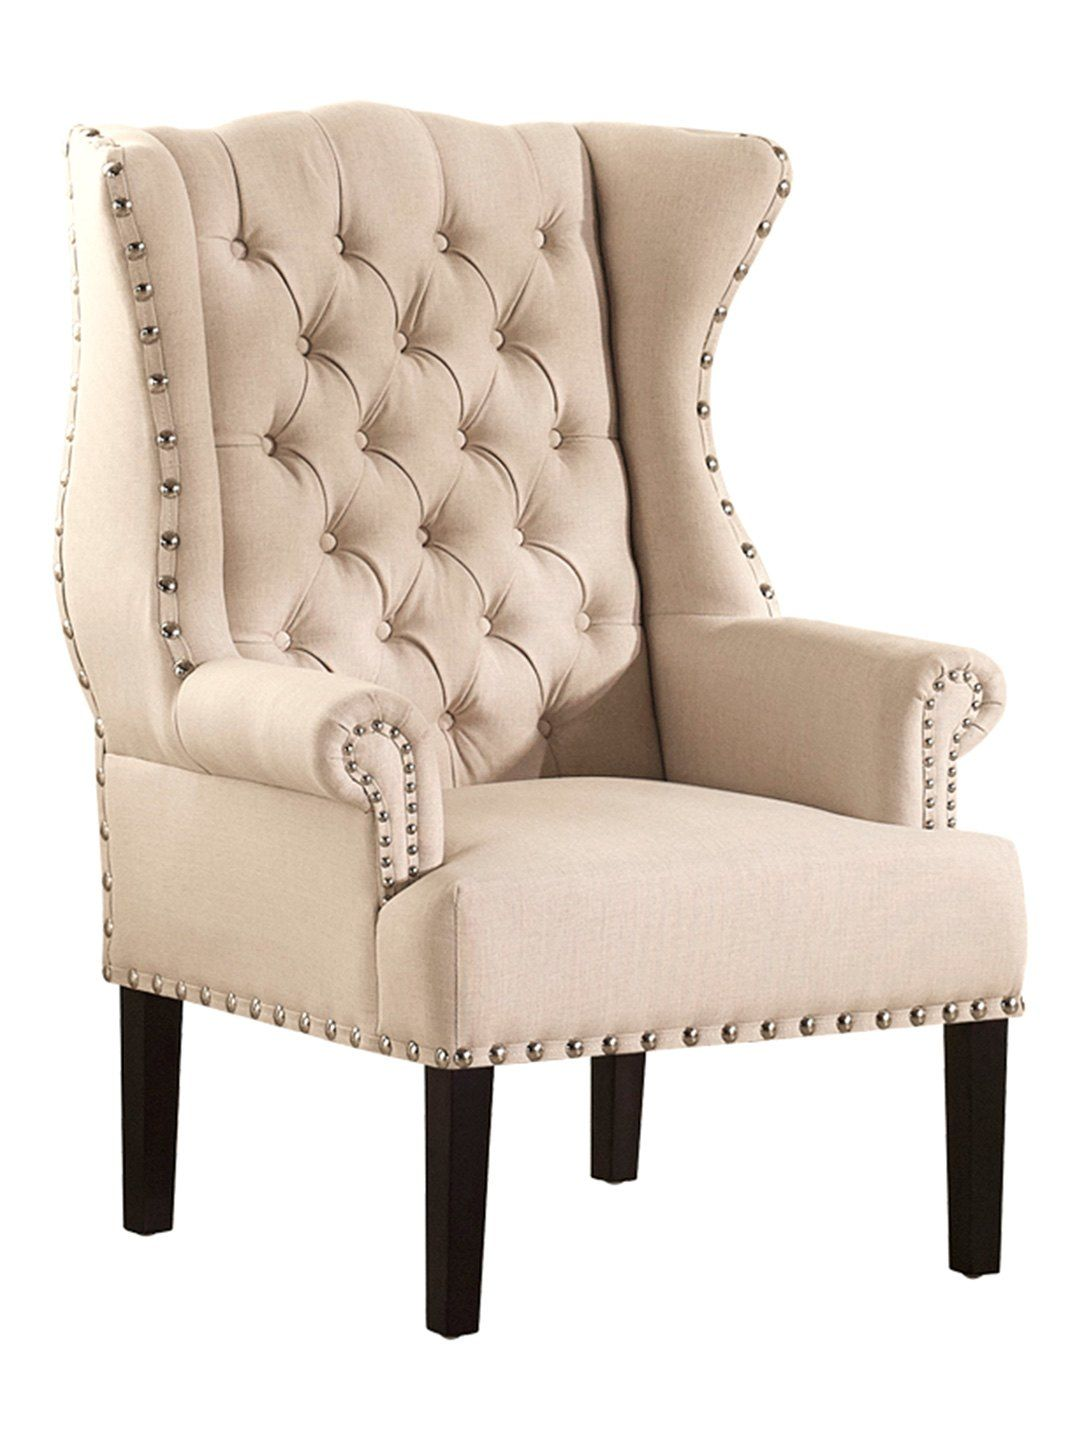 I Love This Design Studios Knuckey French Country Nailhead Wing